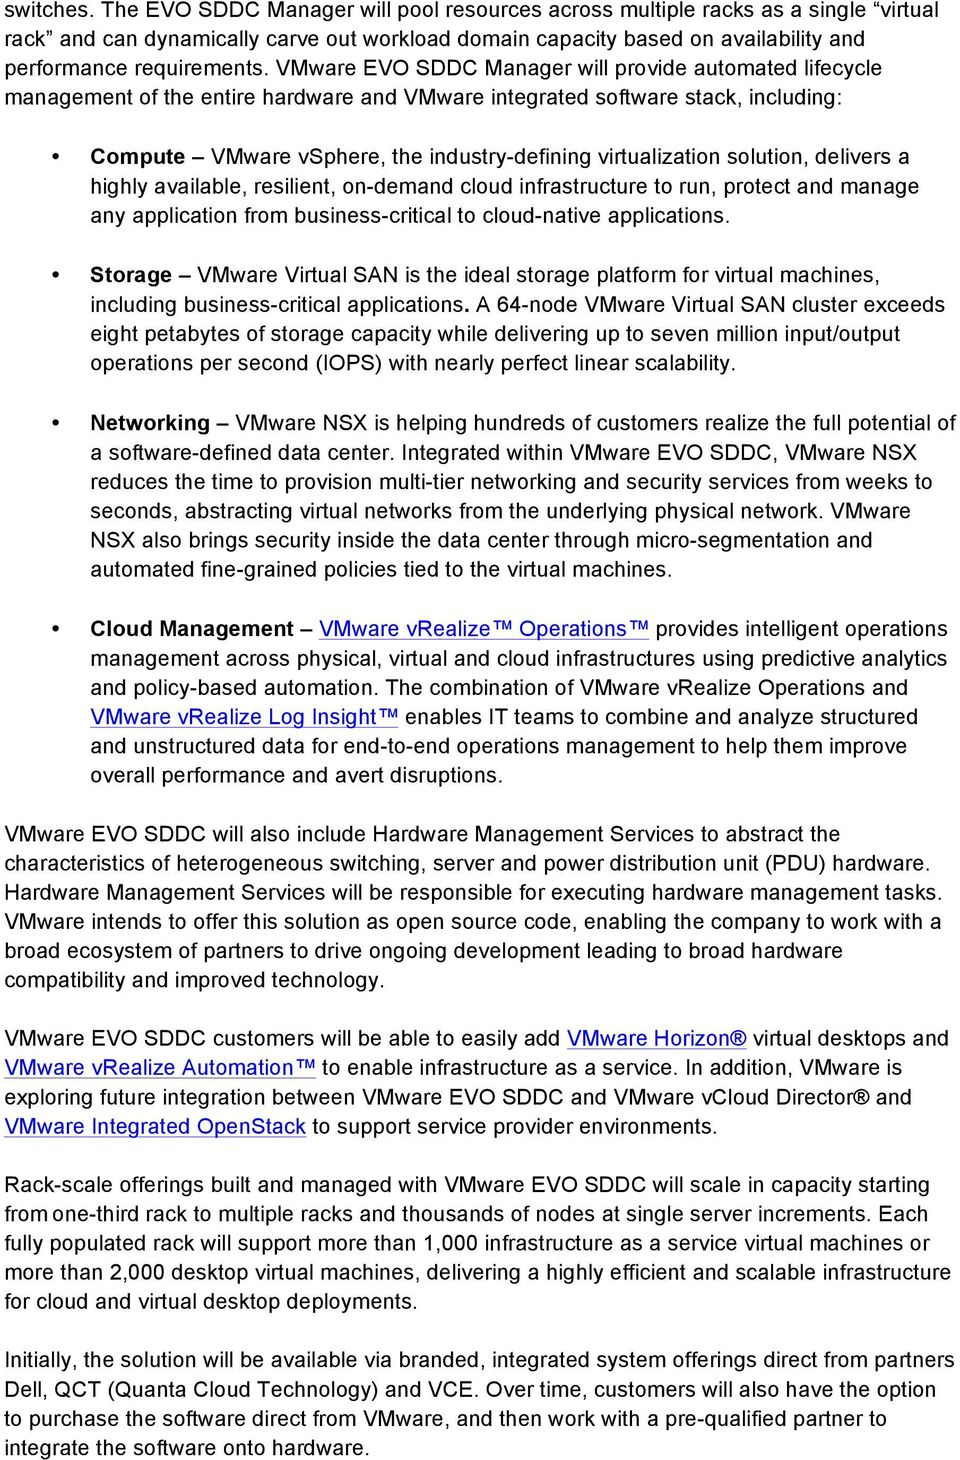 VMware EVO SDDC Manager will provide automated lifecycle management of the entire hardware and VMware integrated software stack, including: Compute VMware vsphere, the industry-defining